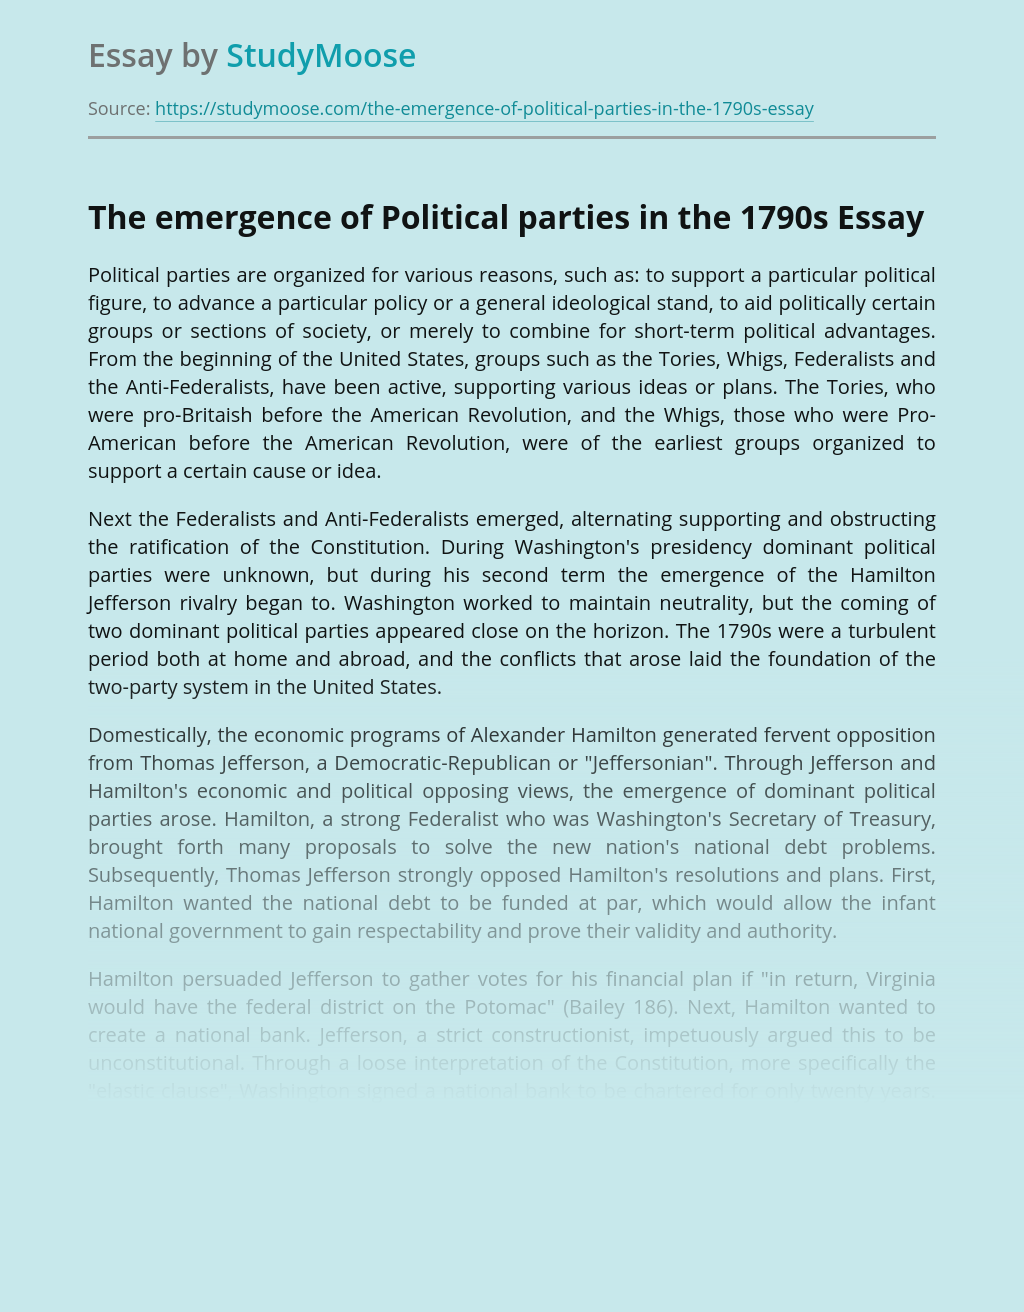 The emergence of Political parties in the 1790s